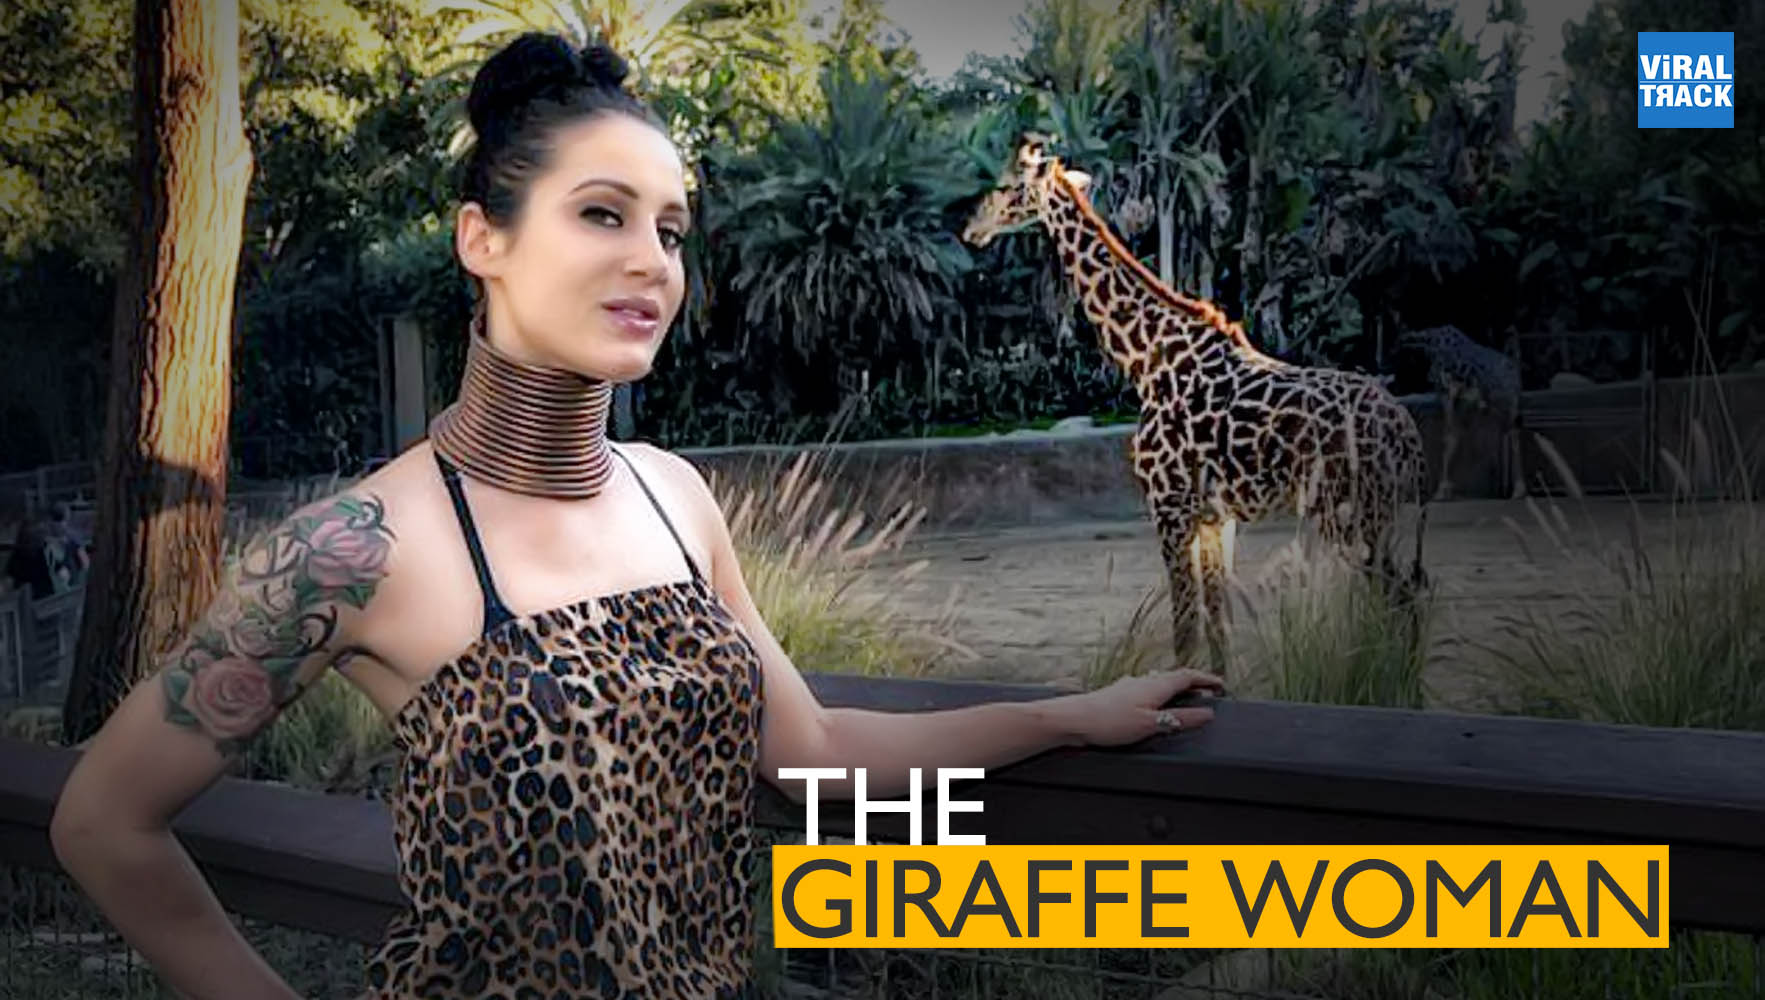 meet the giraffe woman who stretched her neck for 5 years